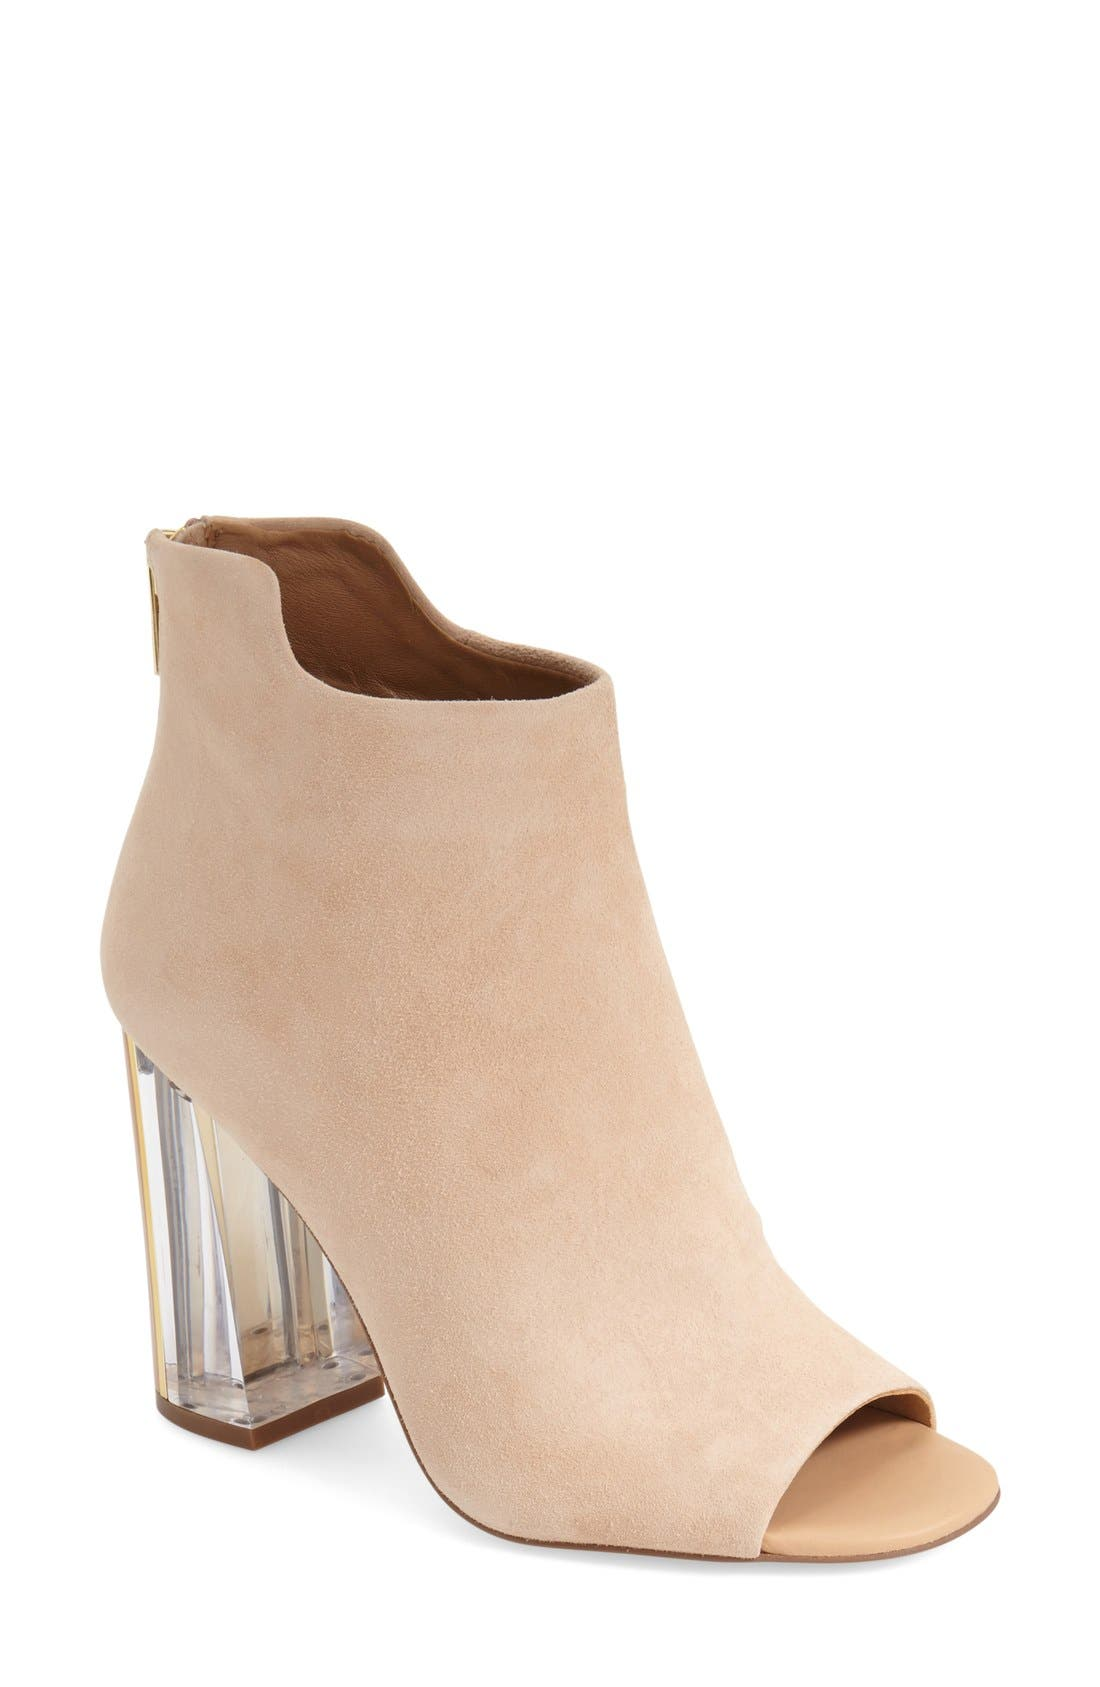 Alternate Image 1 Selected - Calvin Klein 'Lulah' Bootie (Women)